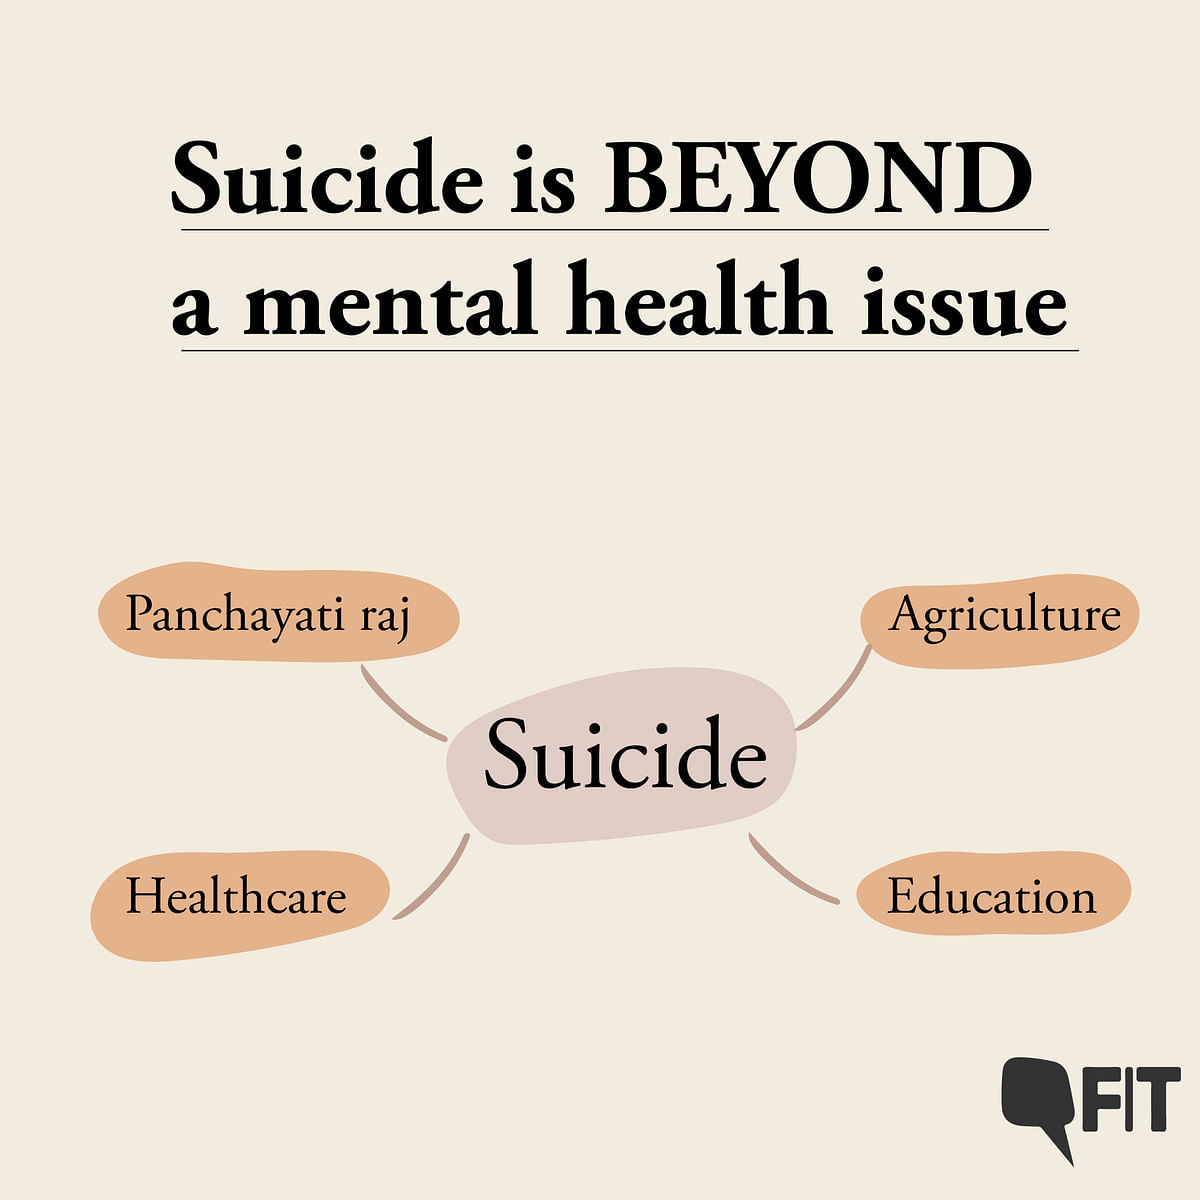 Can We Stop Suicides? Here's How Rural India Is Paving the Way